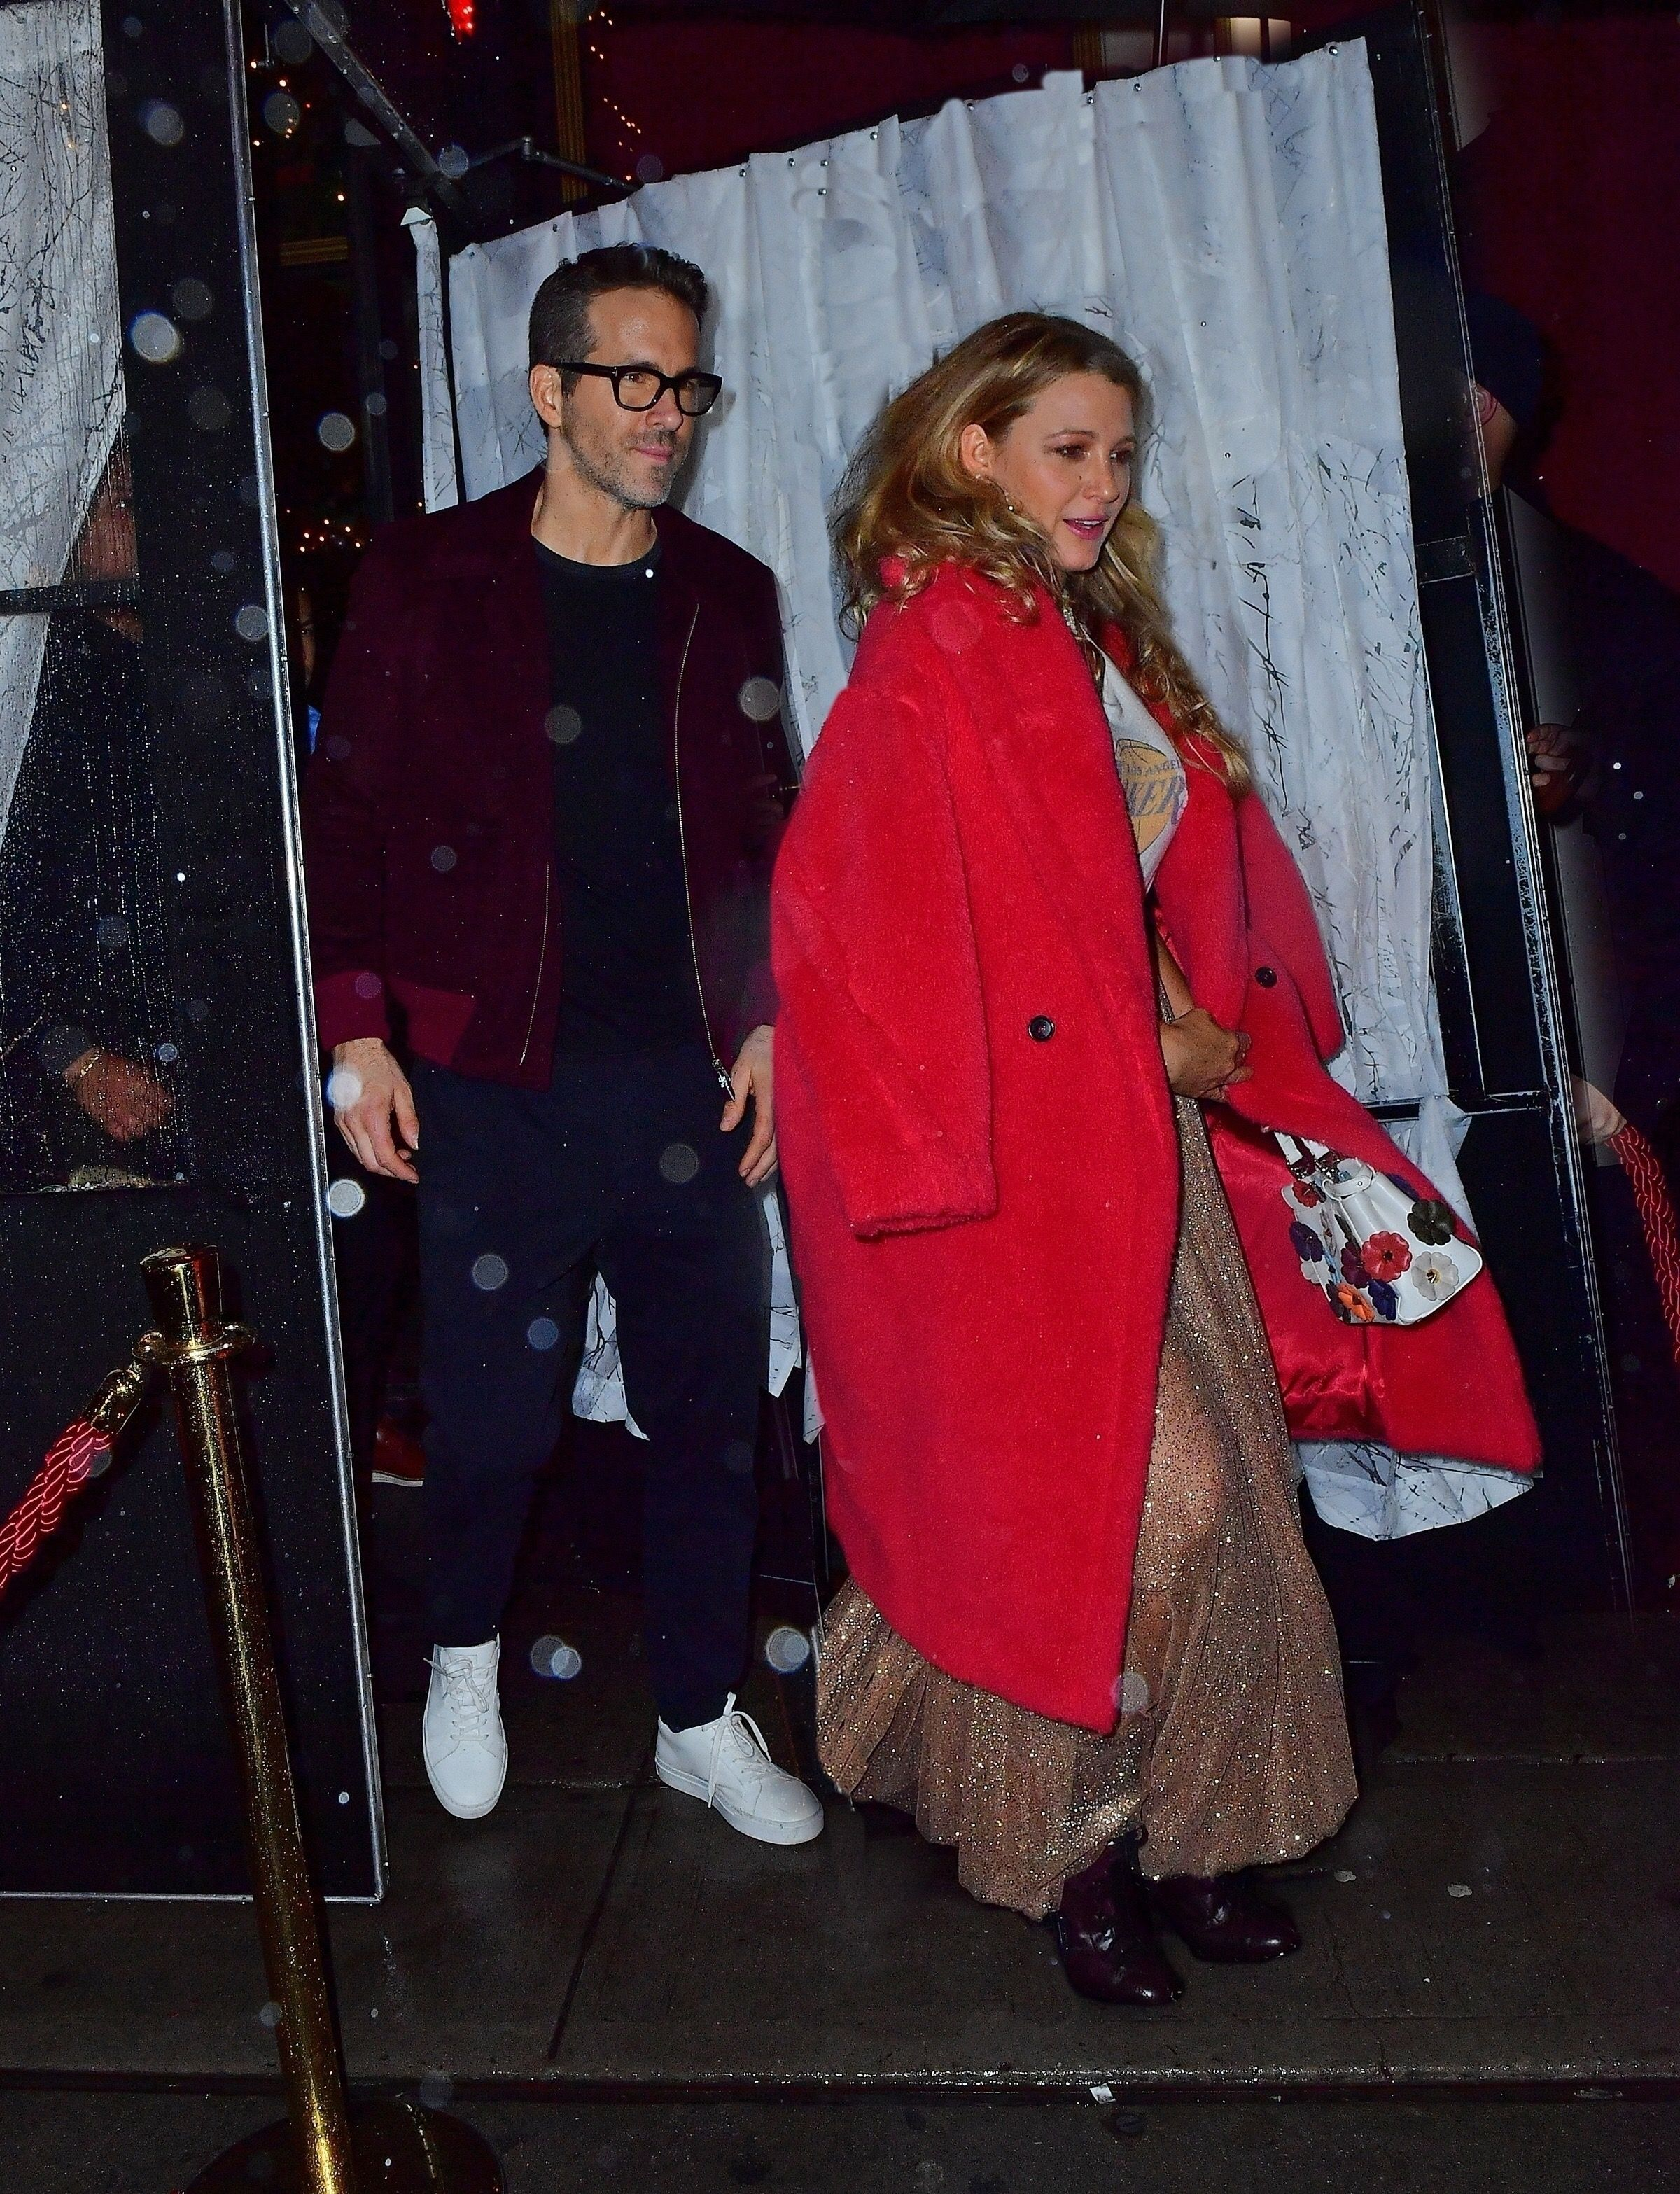 Blake Lively Wore a Festive Glittery Skirt and T-Shirt to Taylor Swift's 30th Birthday Party